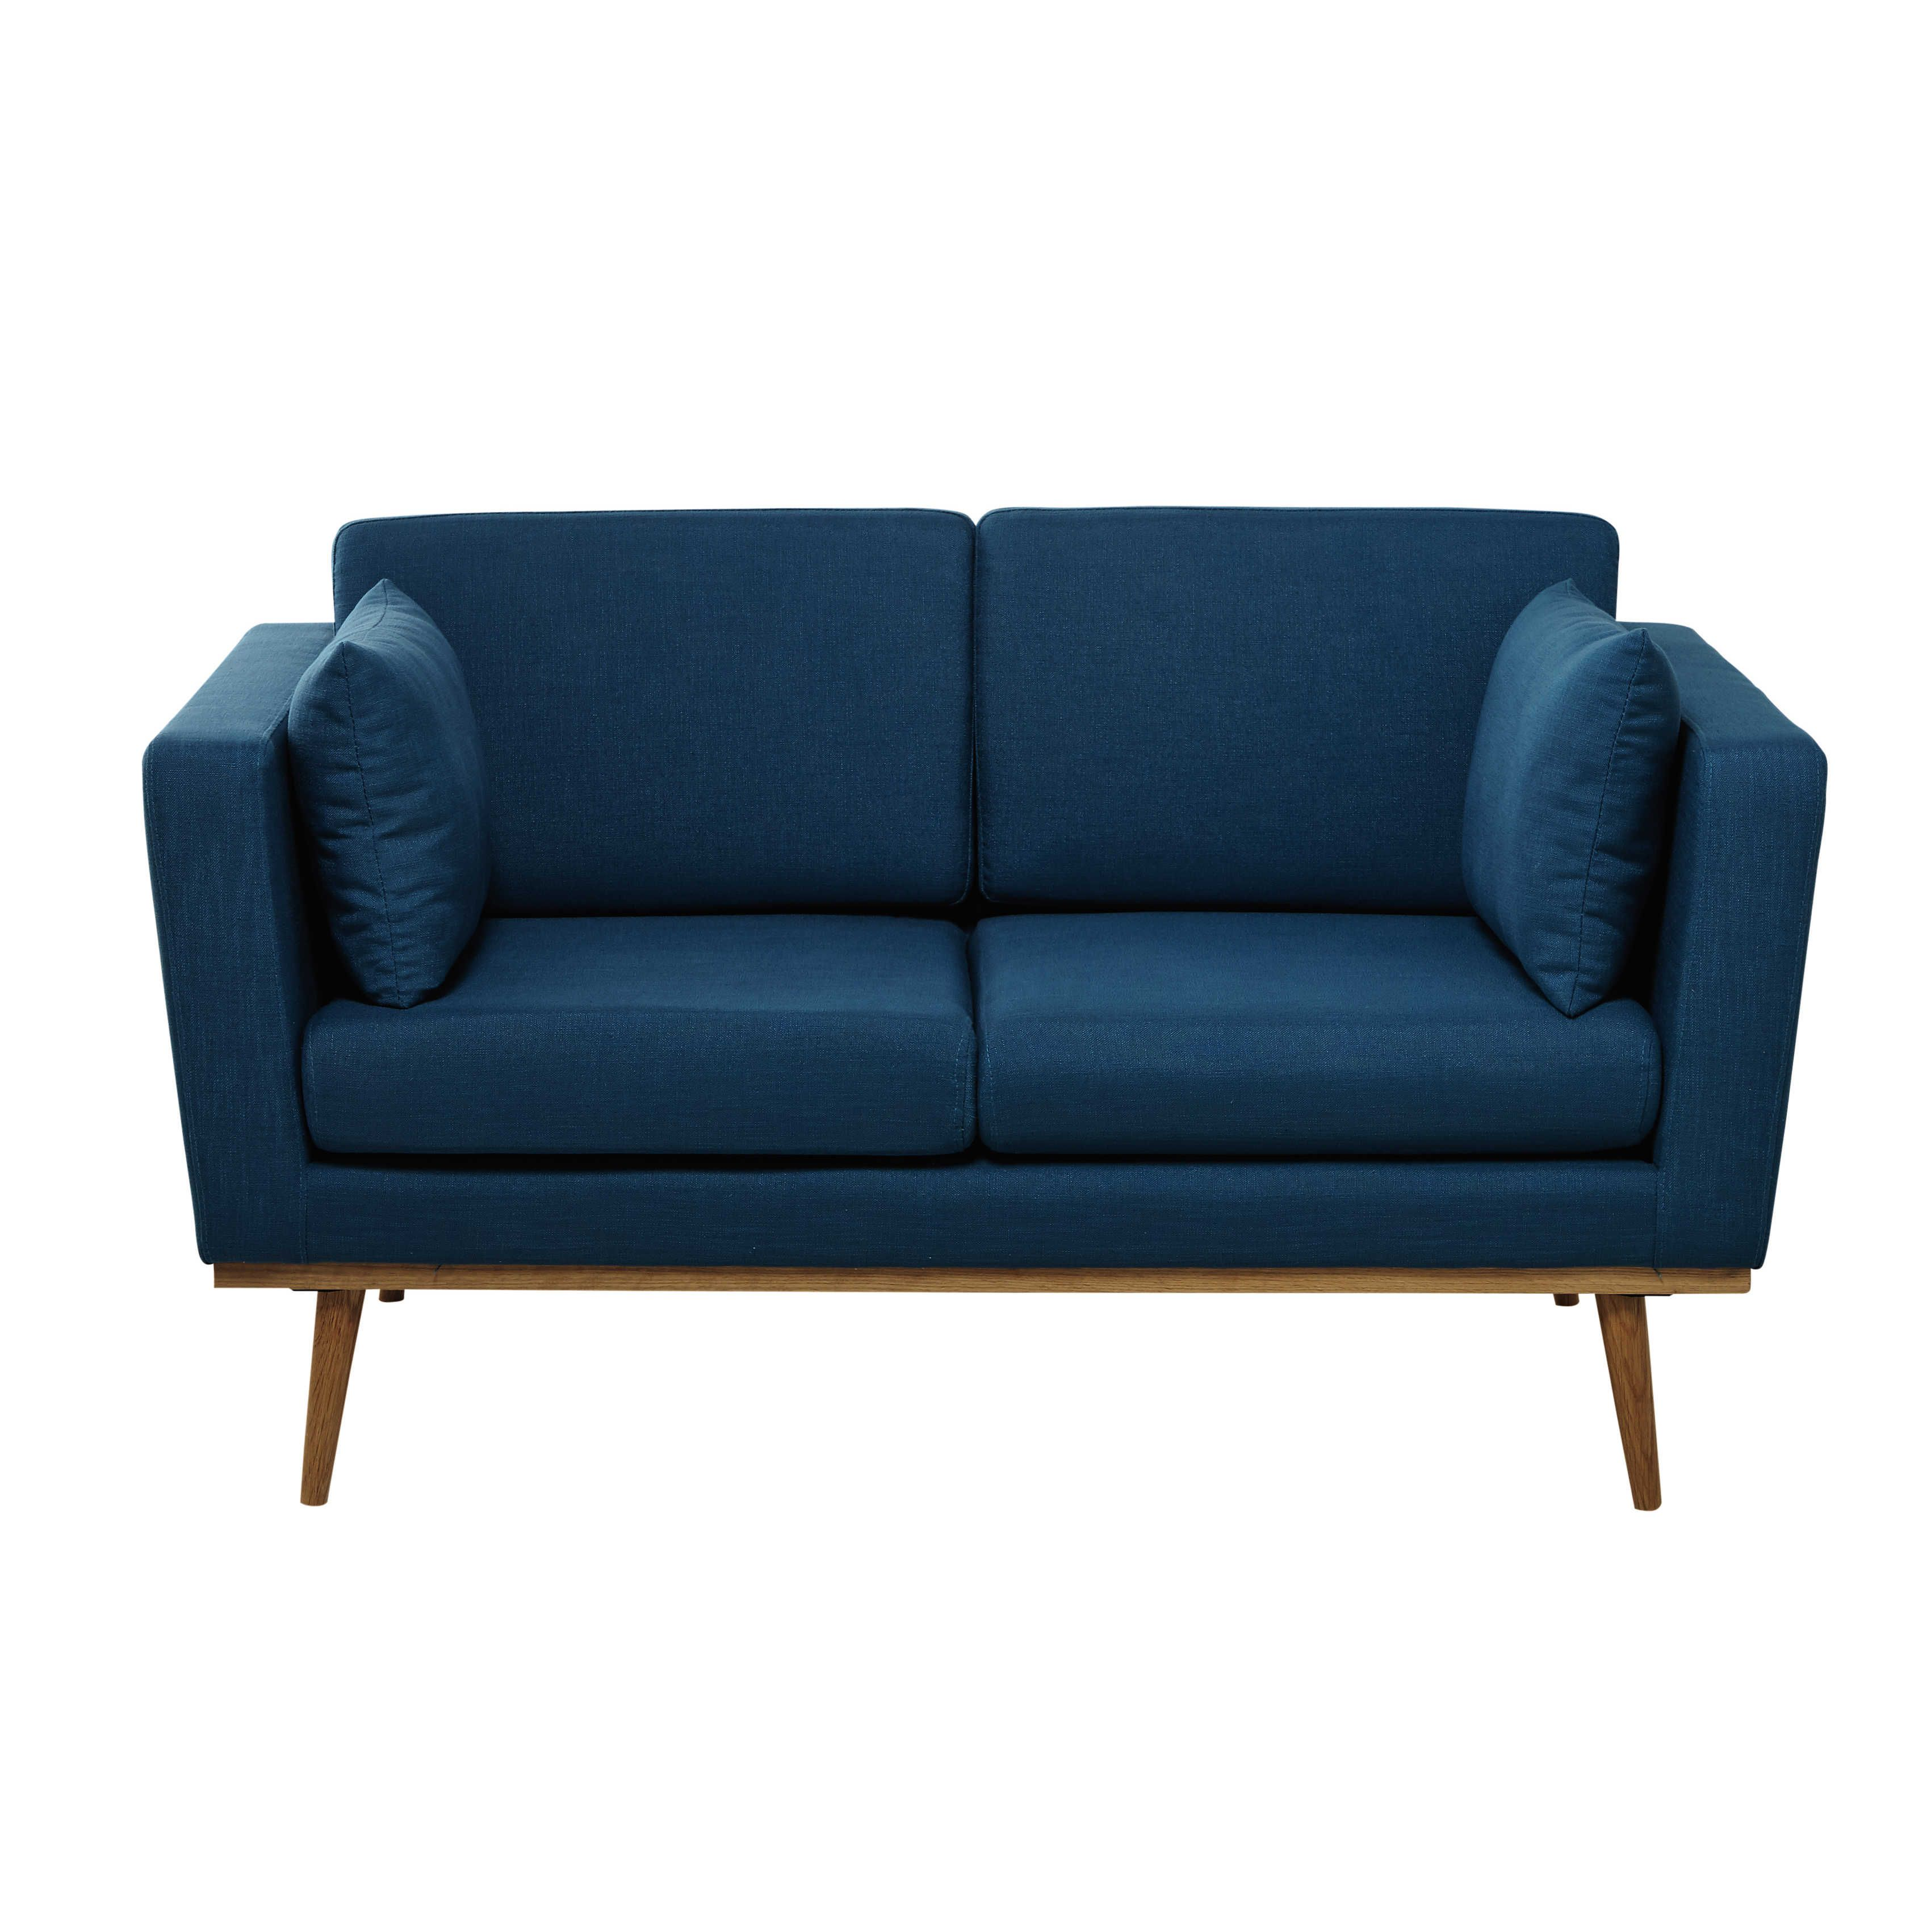 Small stylish sofas for small spaces